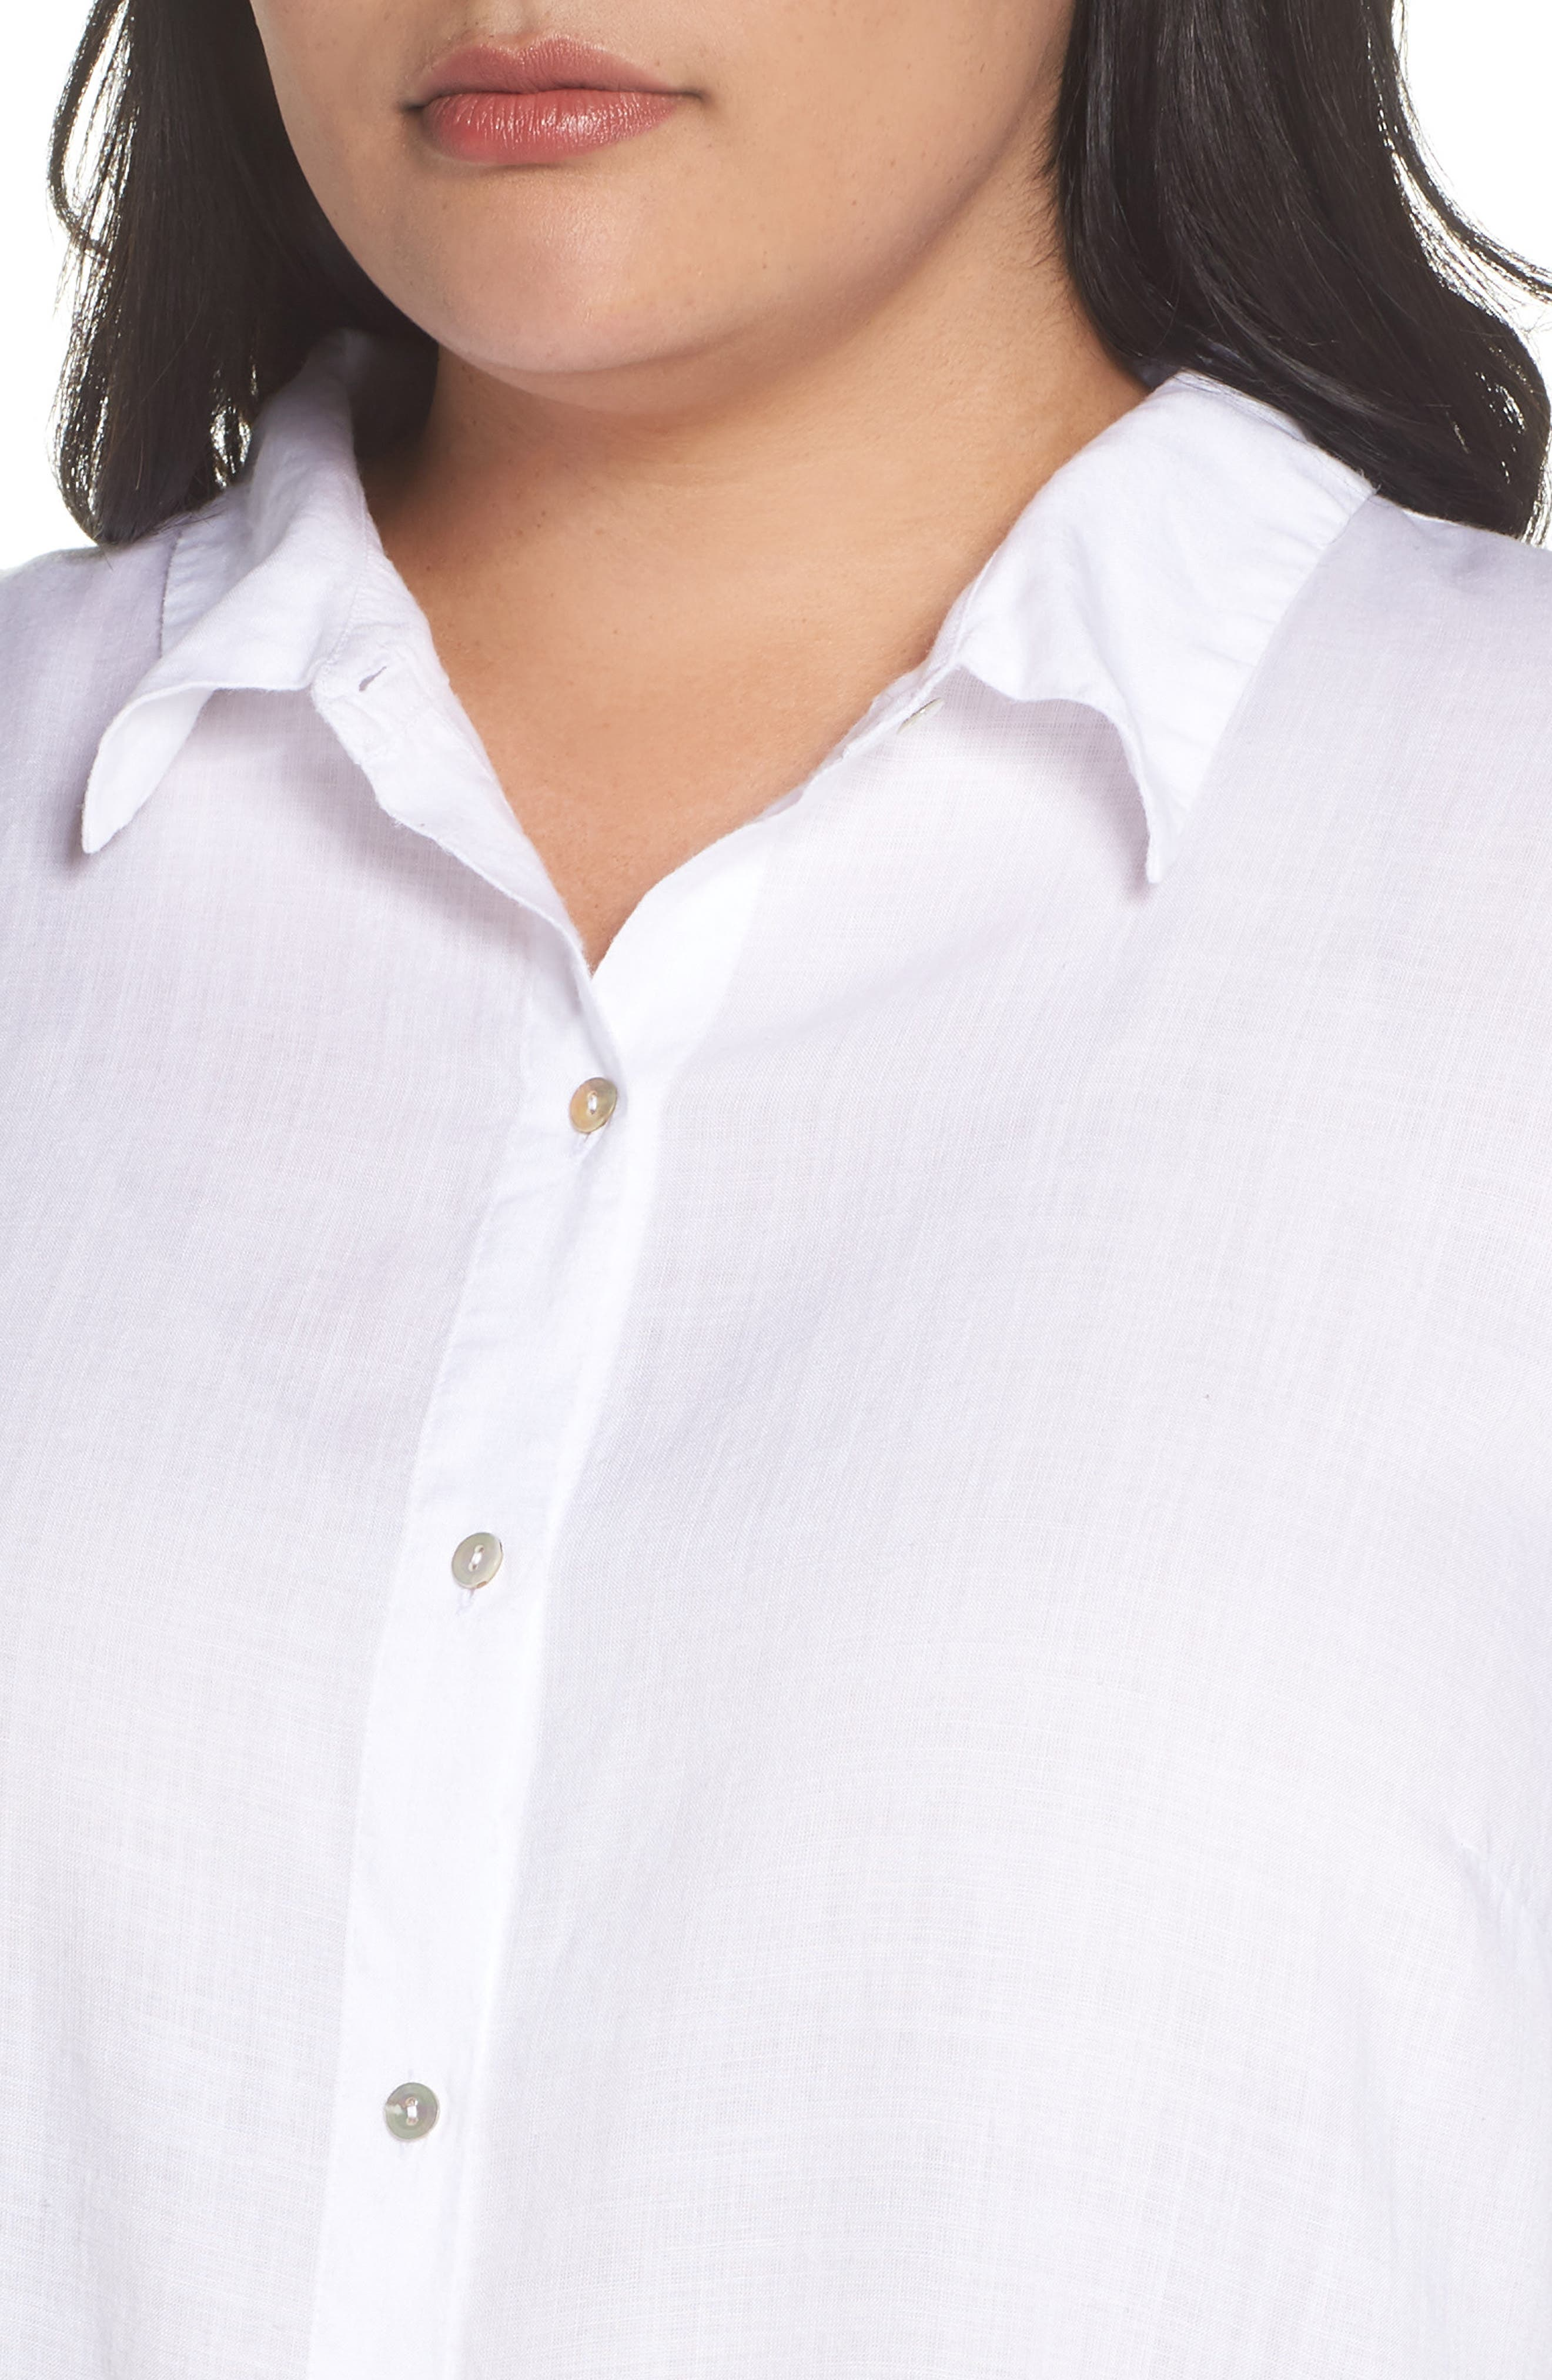 EILEEN FISHER, Tencel<sup>®</sup> Lyocell Shirt, Alternate thumbnail 4, color, WHITE